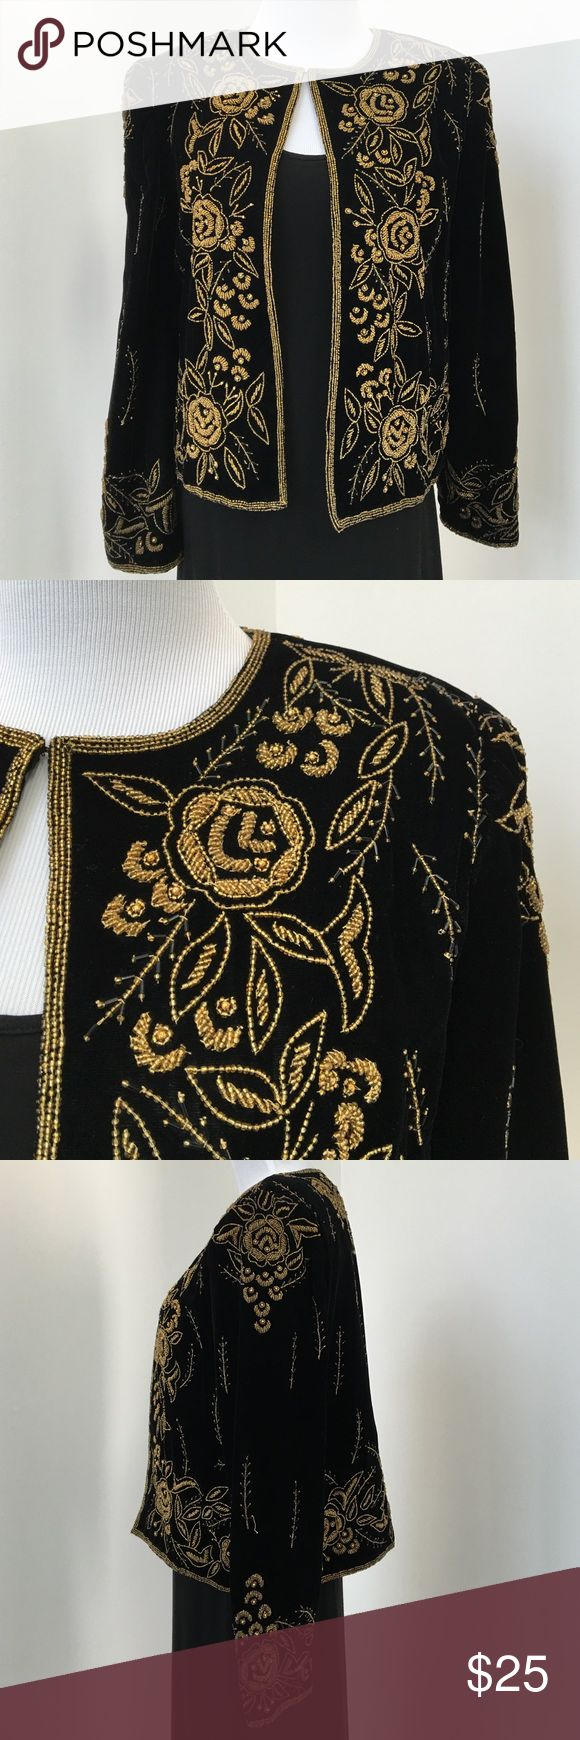 "Ladies Black Velvet Open Jacket Size Small Beautiful black velvet, open jacket with gold beading design. 20"" length. 15"" shoulder width. Size Small. Leslie Fay Jackets & Coats"